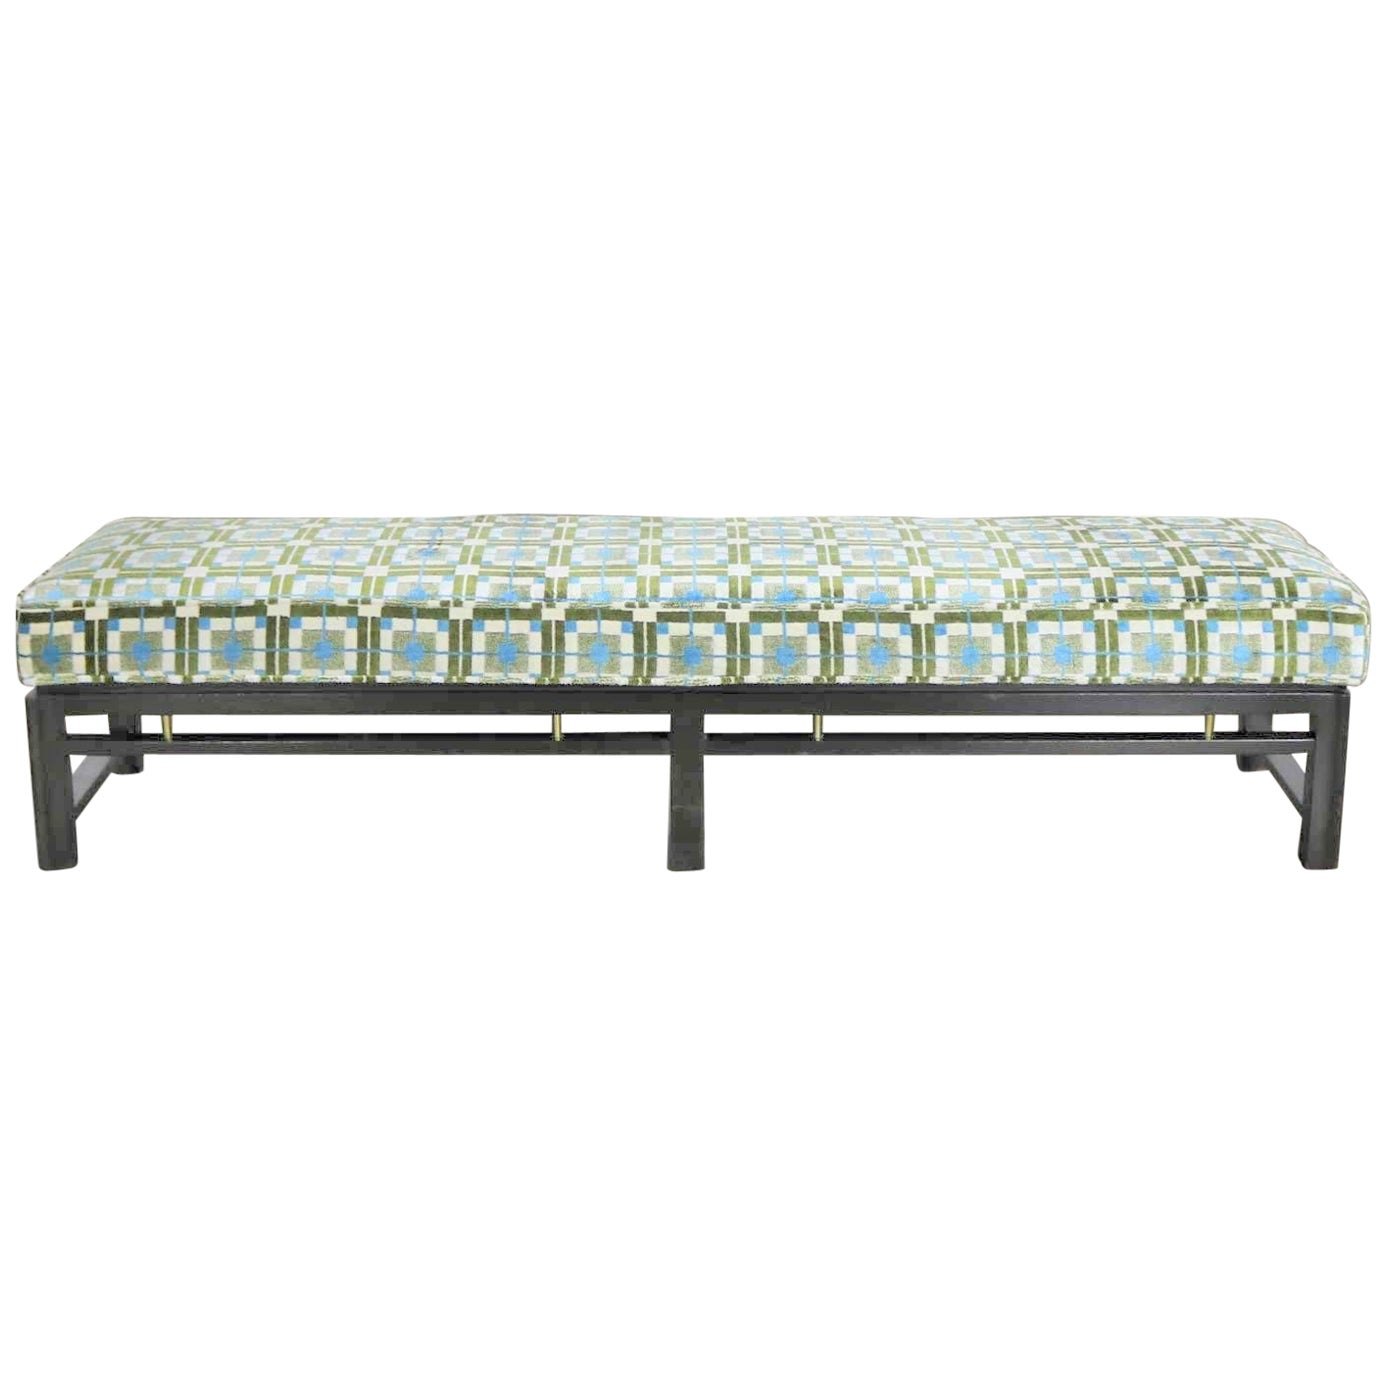 Edward Wormley for Dunbar Mid-Century Modern Bench Newly Upholstered